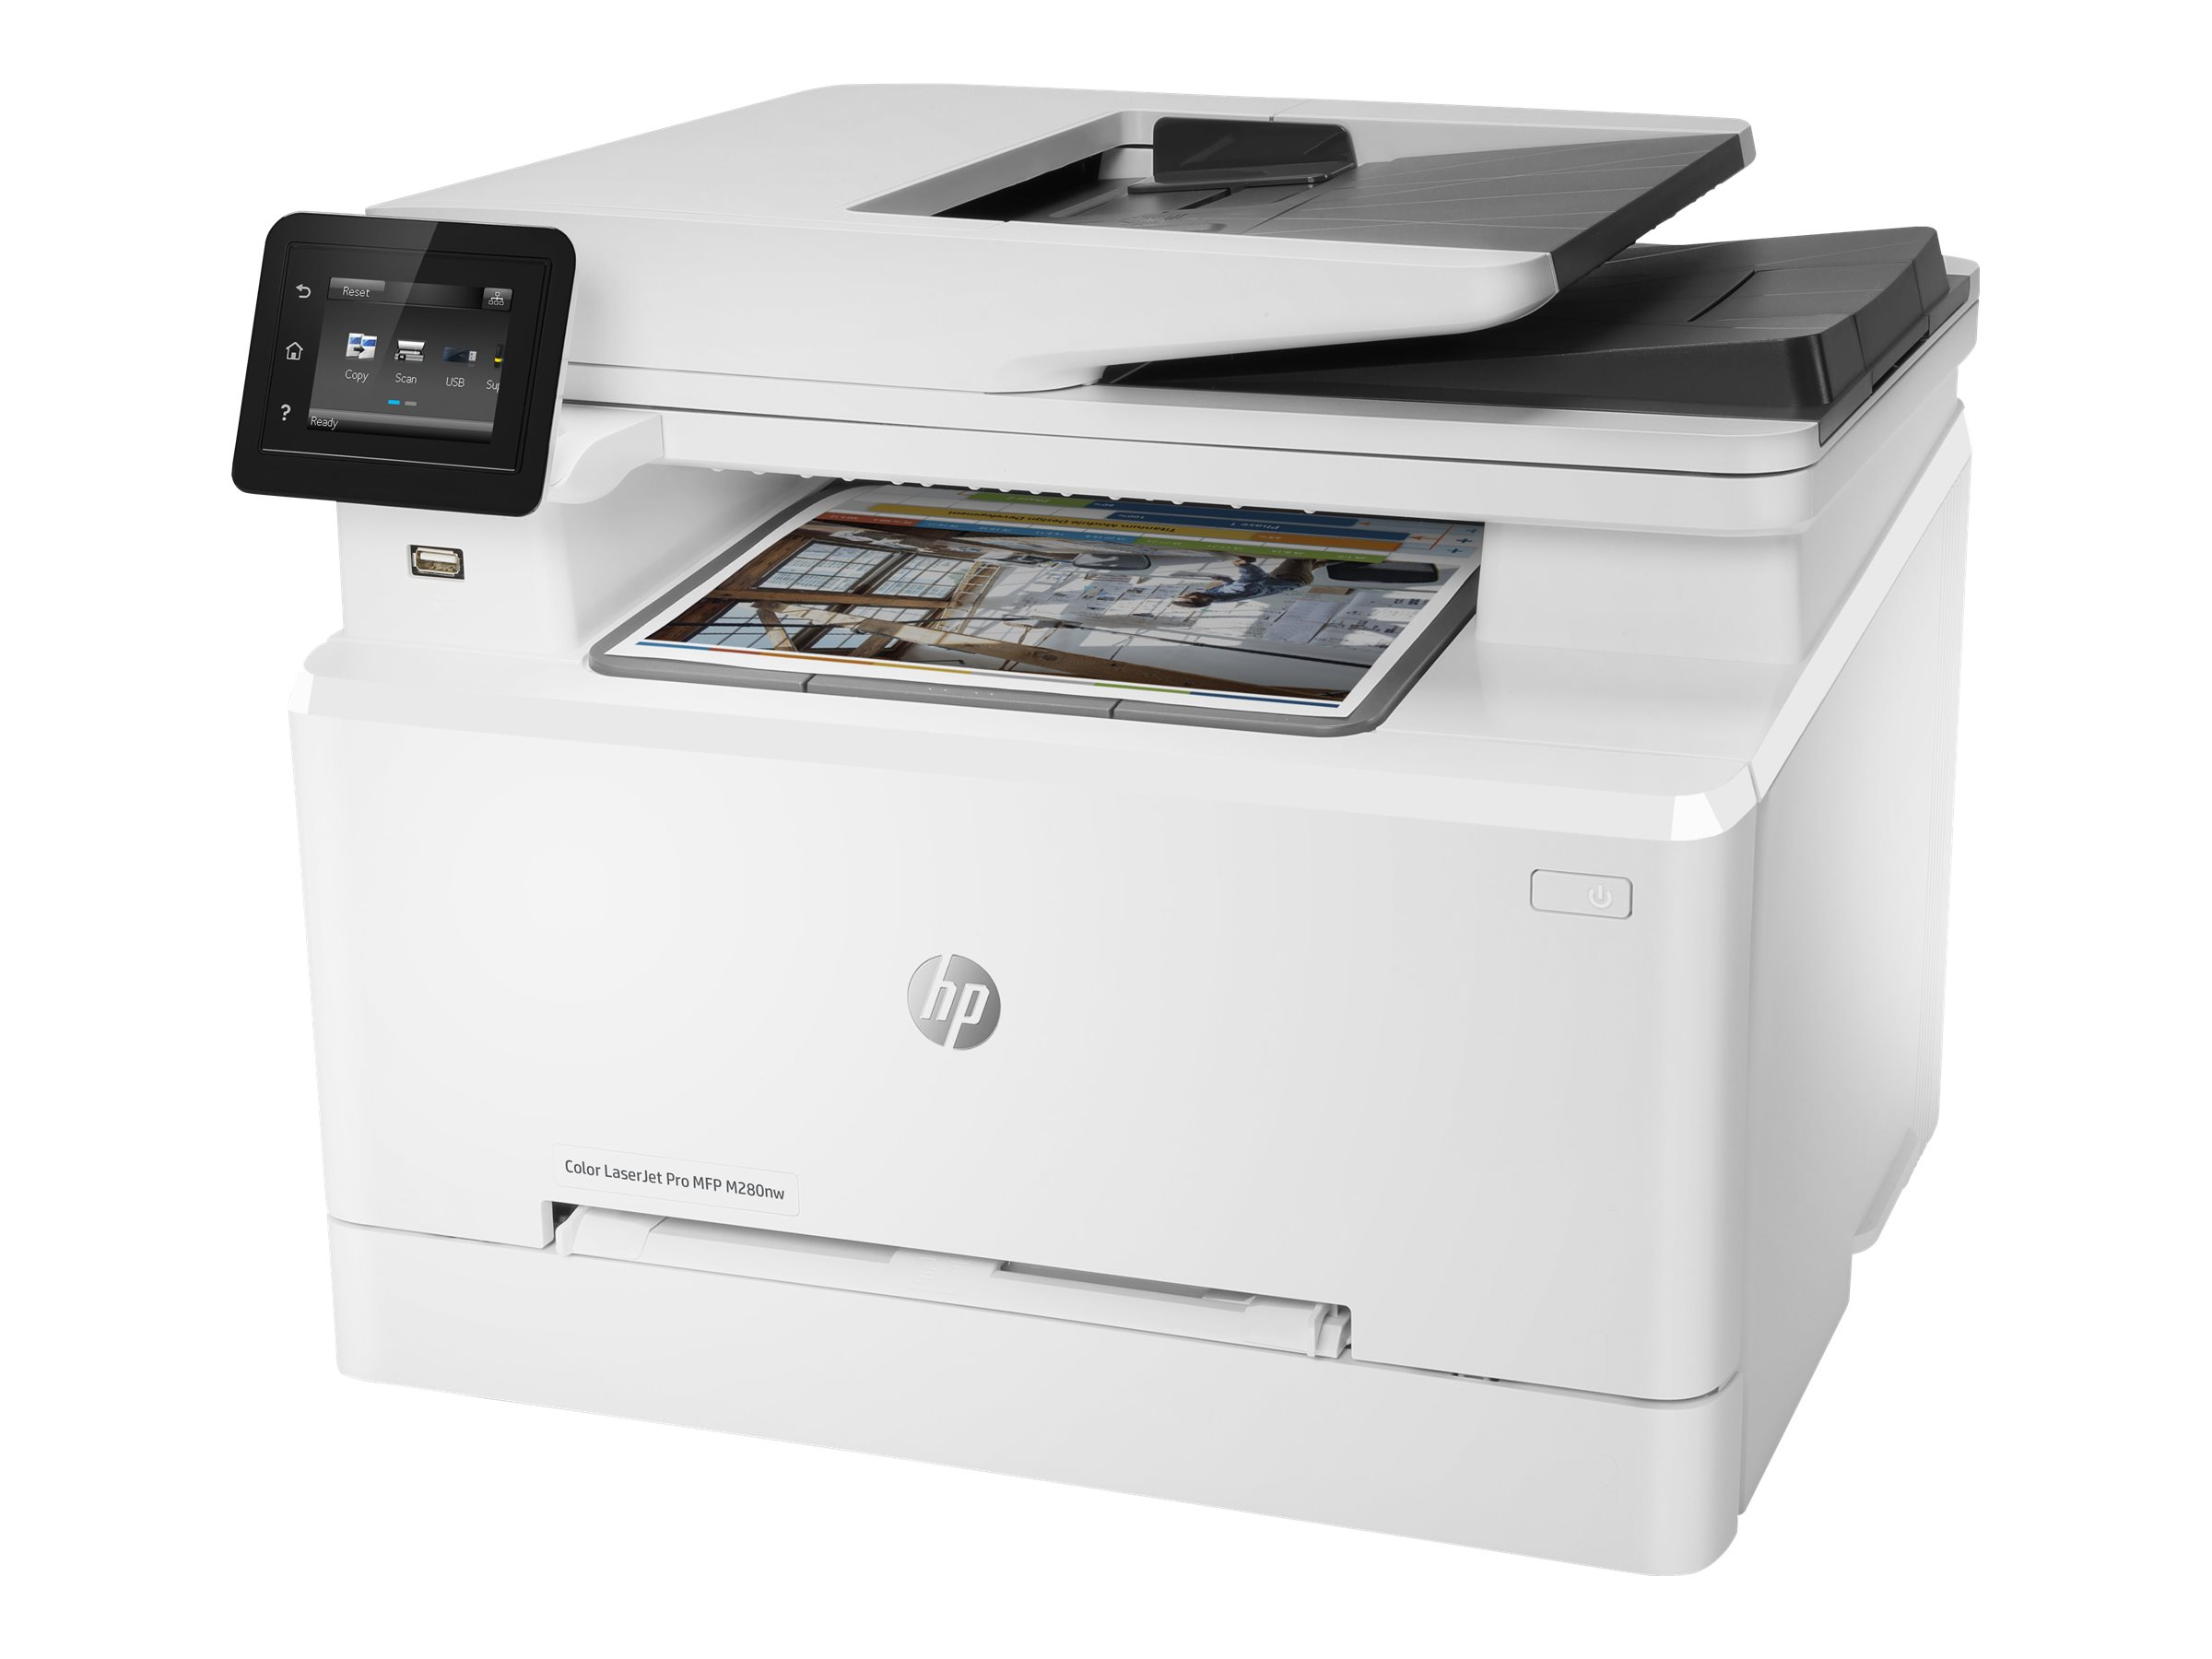 hp color laserjet pro mfp m280nw imprimante multifonctions couleur laser imprimantes. Black Bedroom Furniture Sets. Home Design Ideas